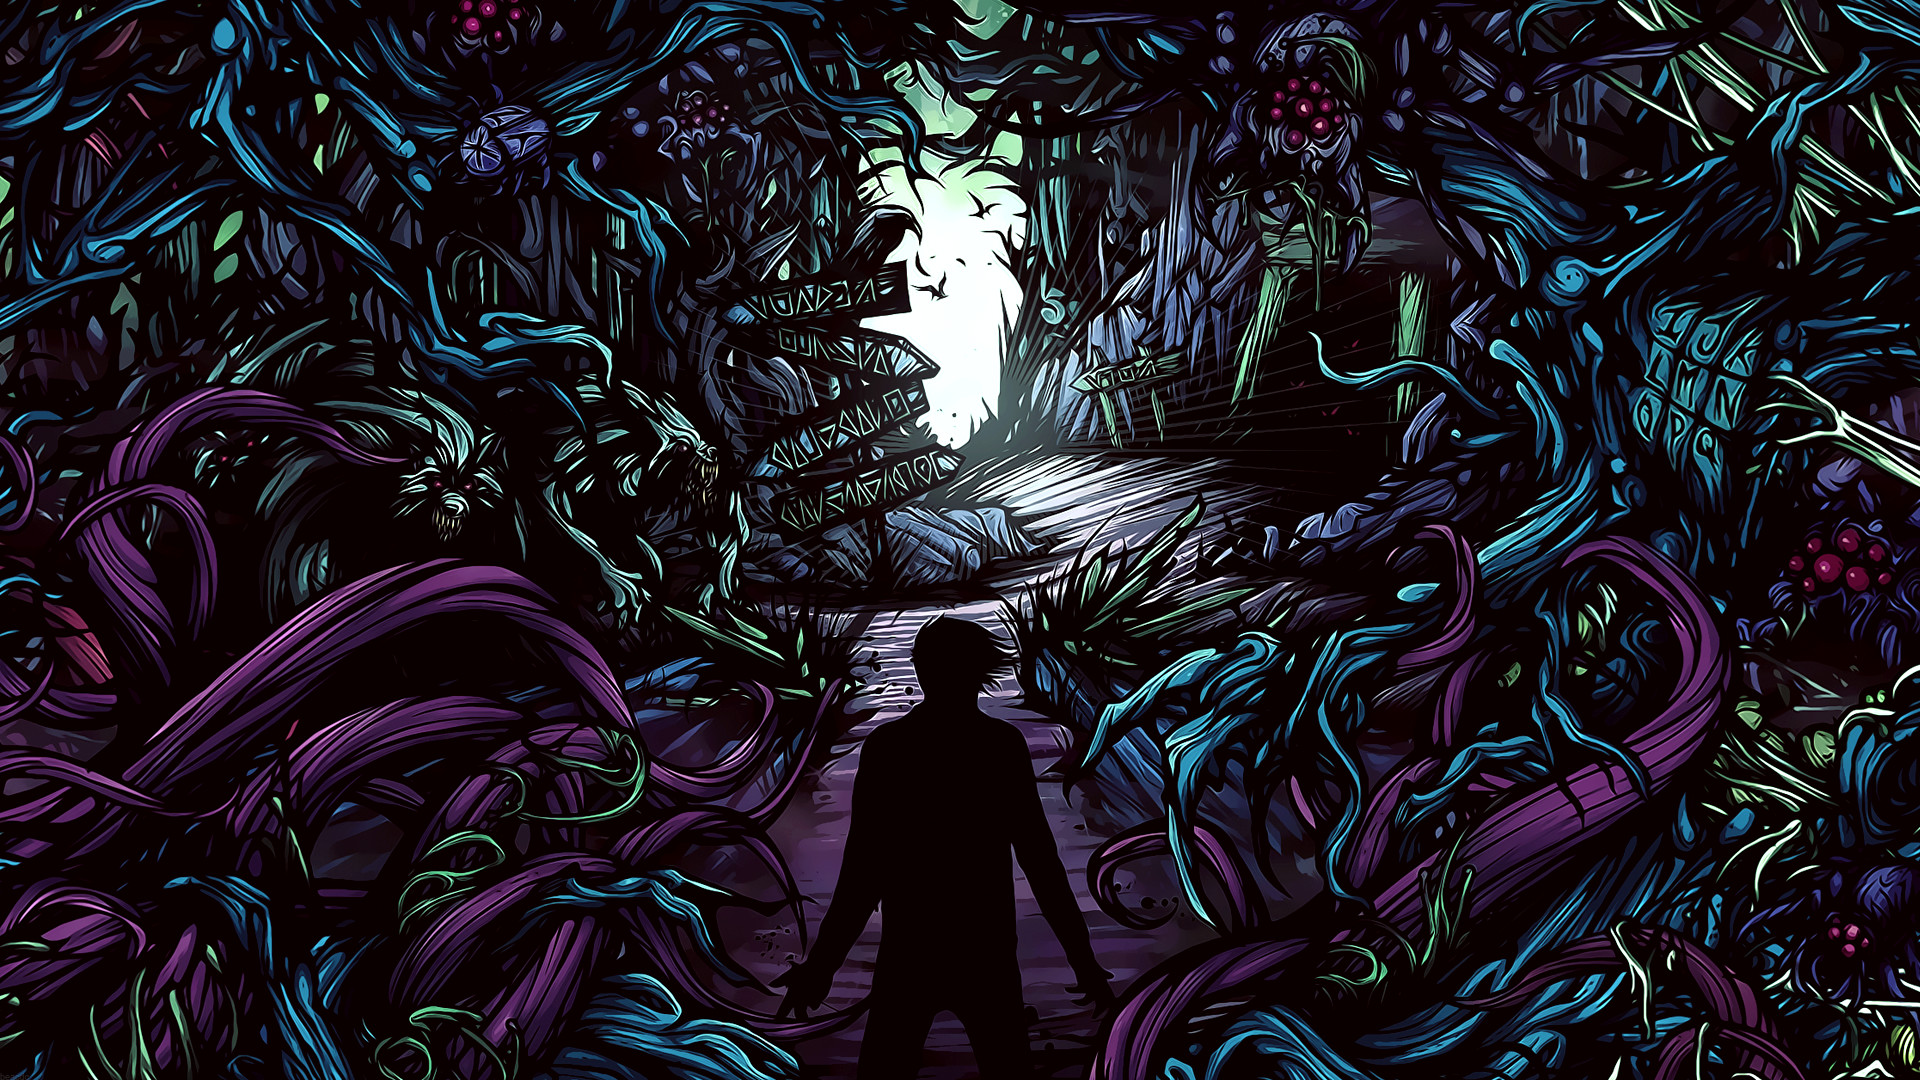 Album Cover Art Wallpaper (65+ images) A Day To Remember Homesick Album Cover Black And White